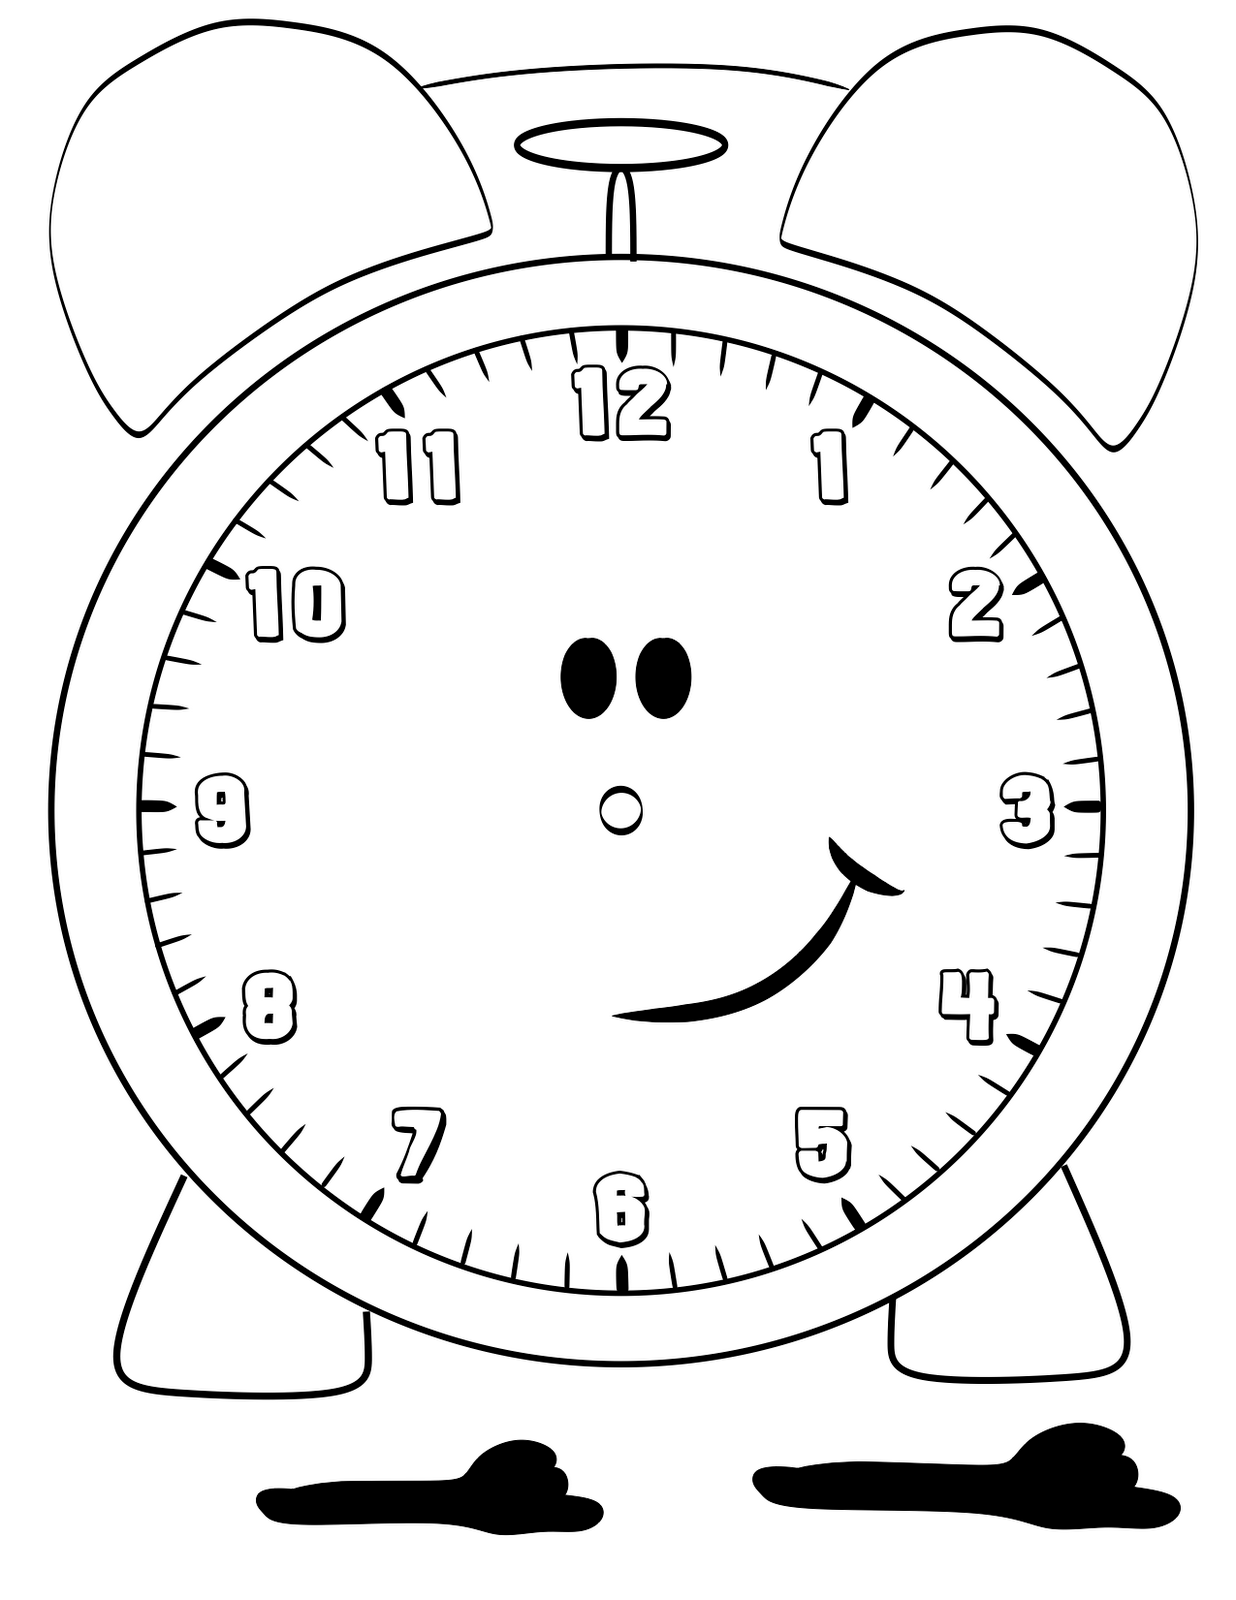 Printable coloring pages exercise - Blank Clock Faces For Exercises Activity Shelter